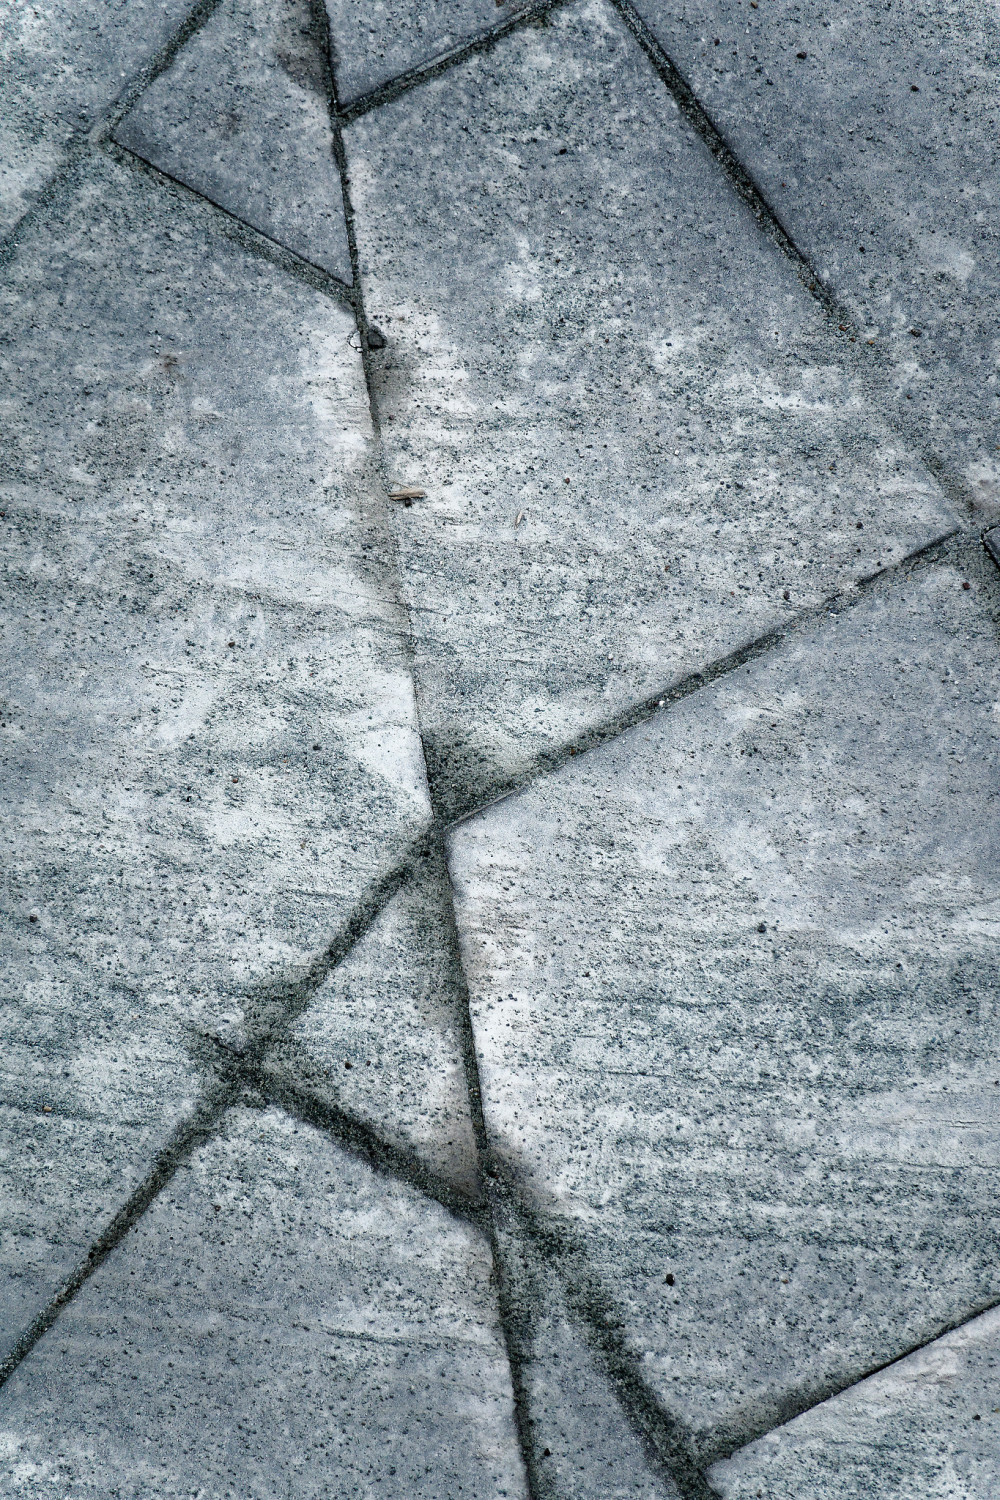 Patterns in stone 1/2